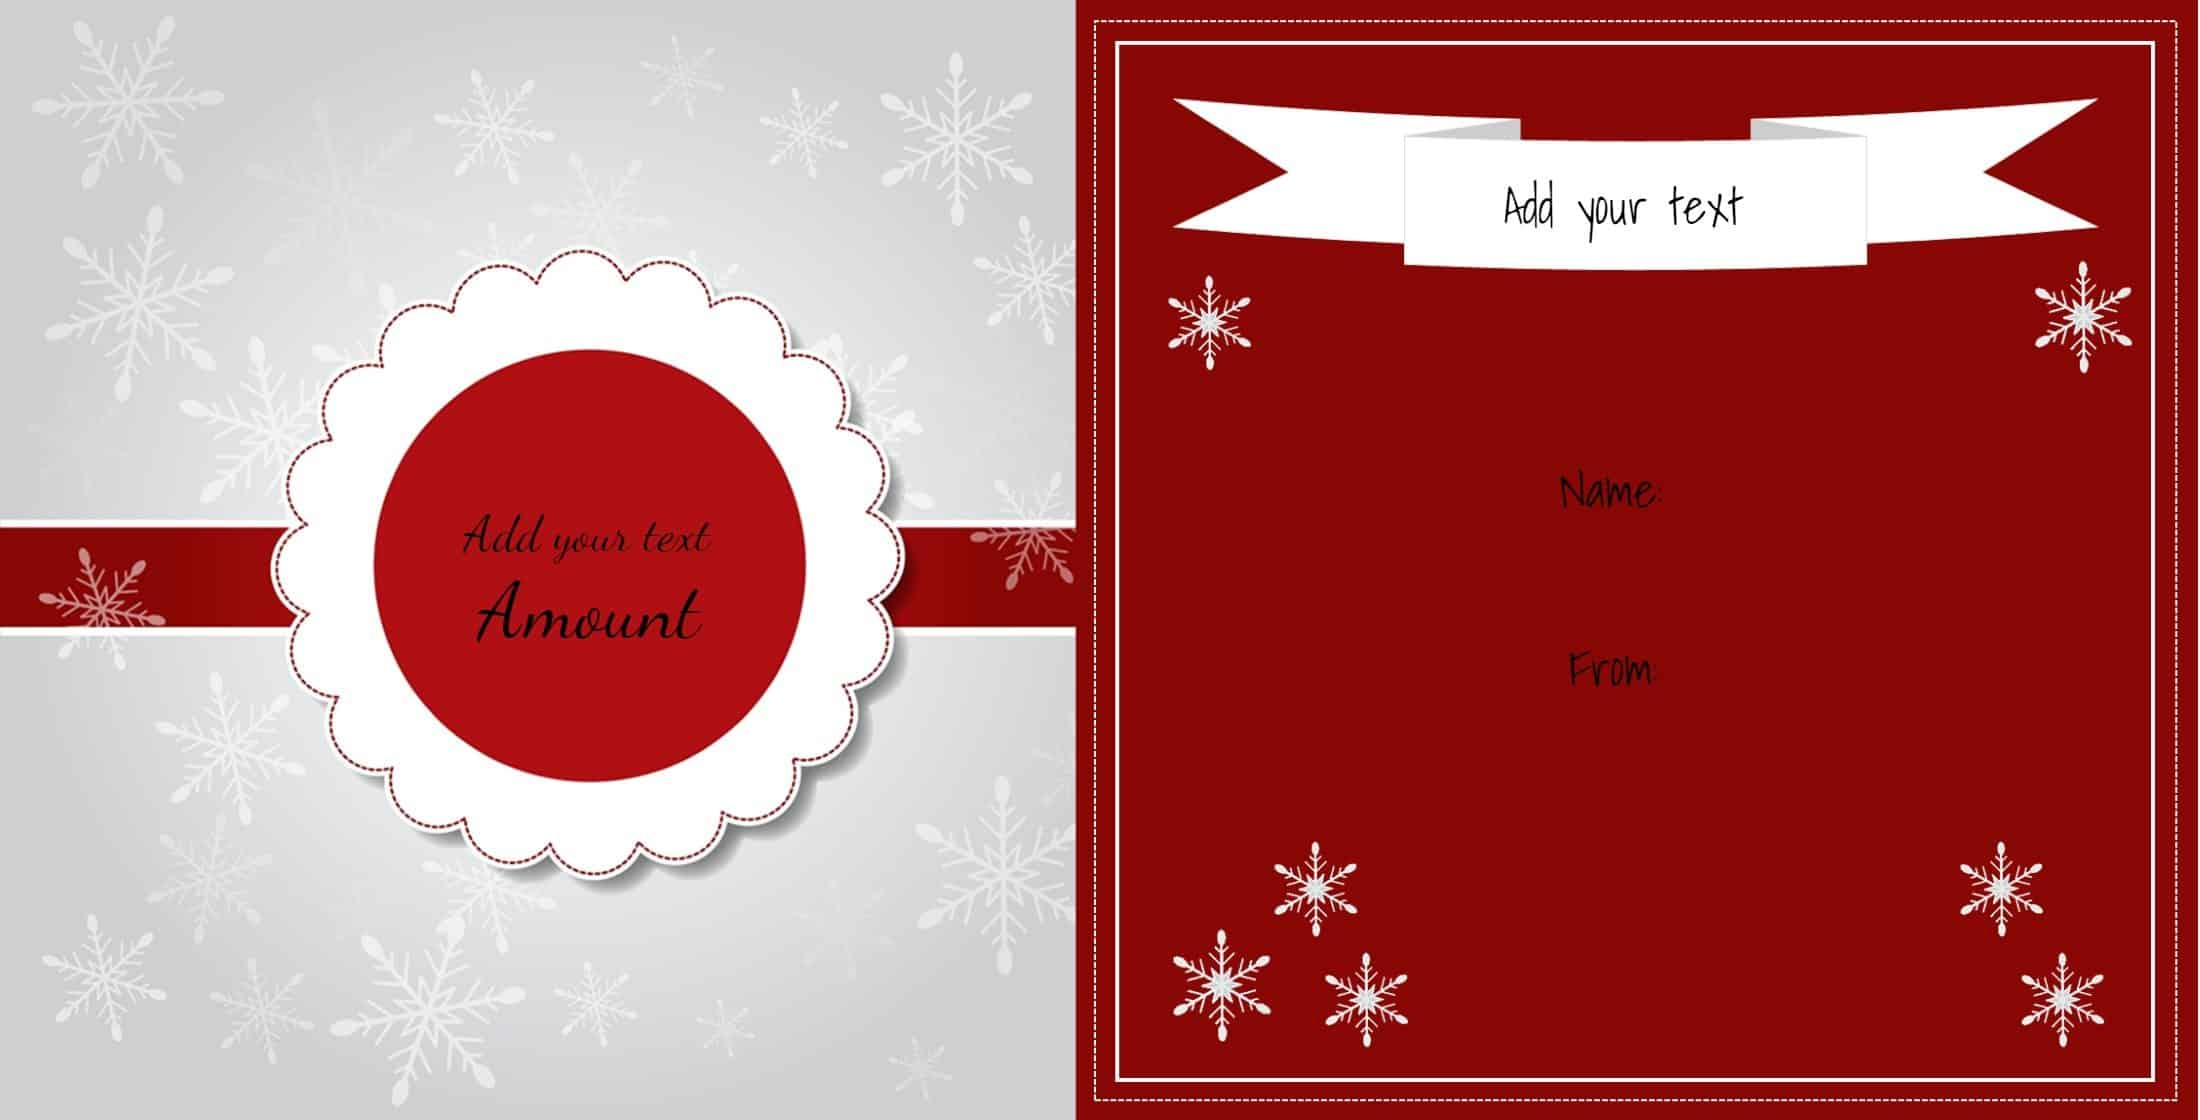 Christmas gift certificate templates for Holiday gift certificate templates